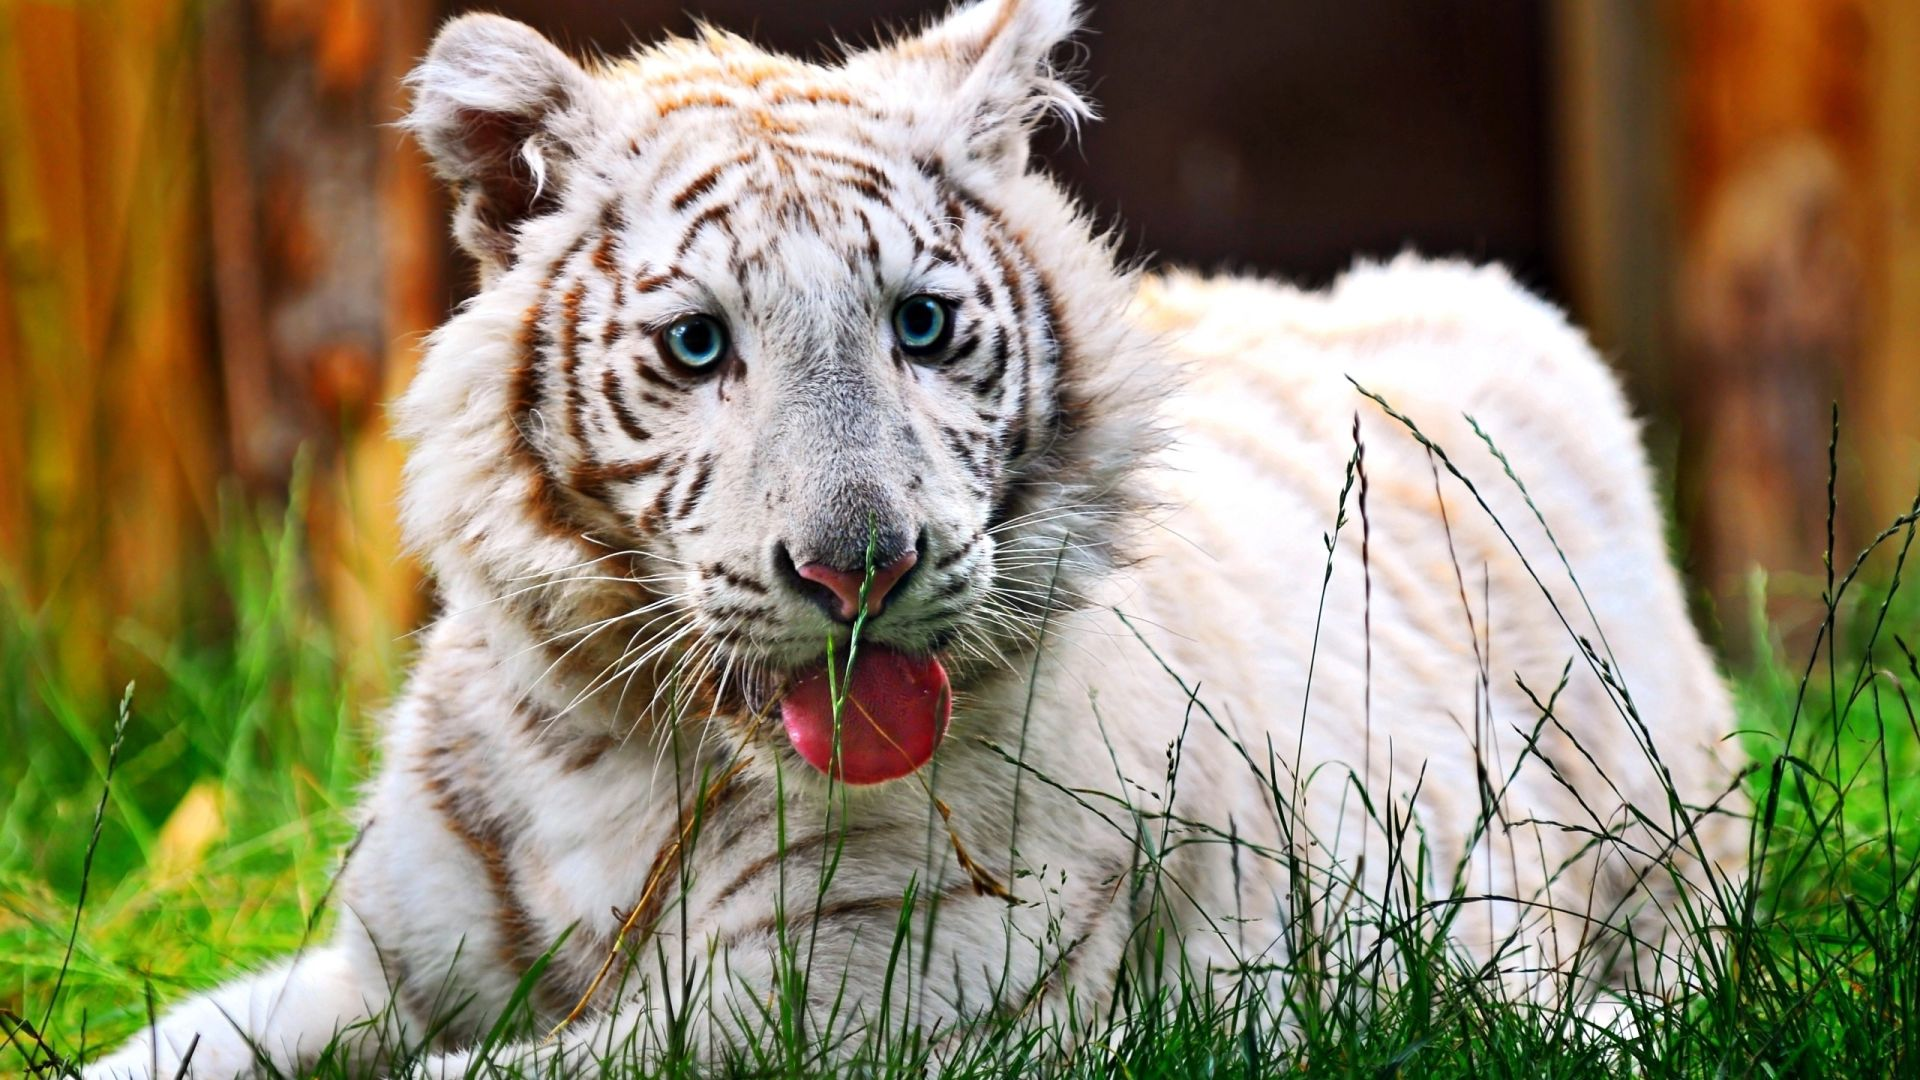 White Tiger Tiger likes to relax, Wallpaper